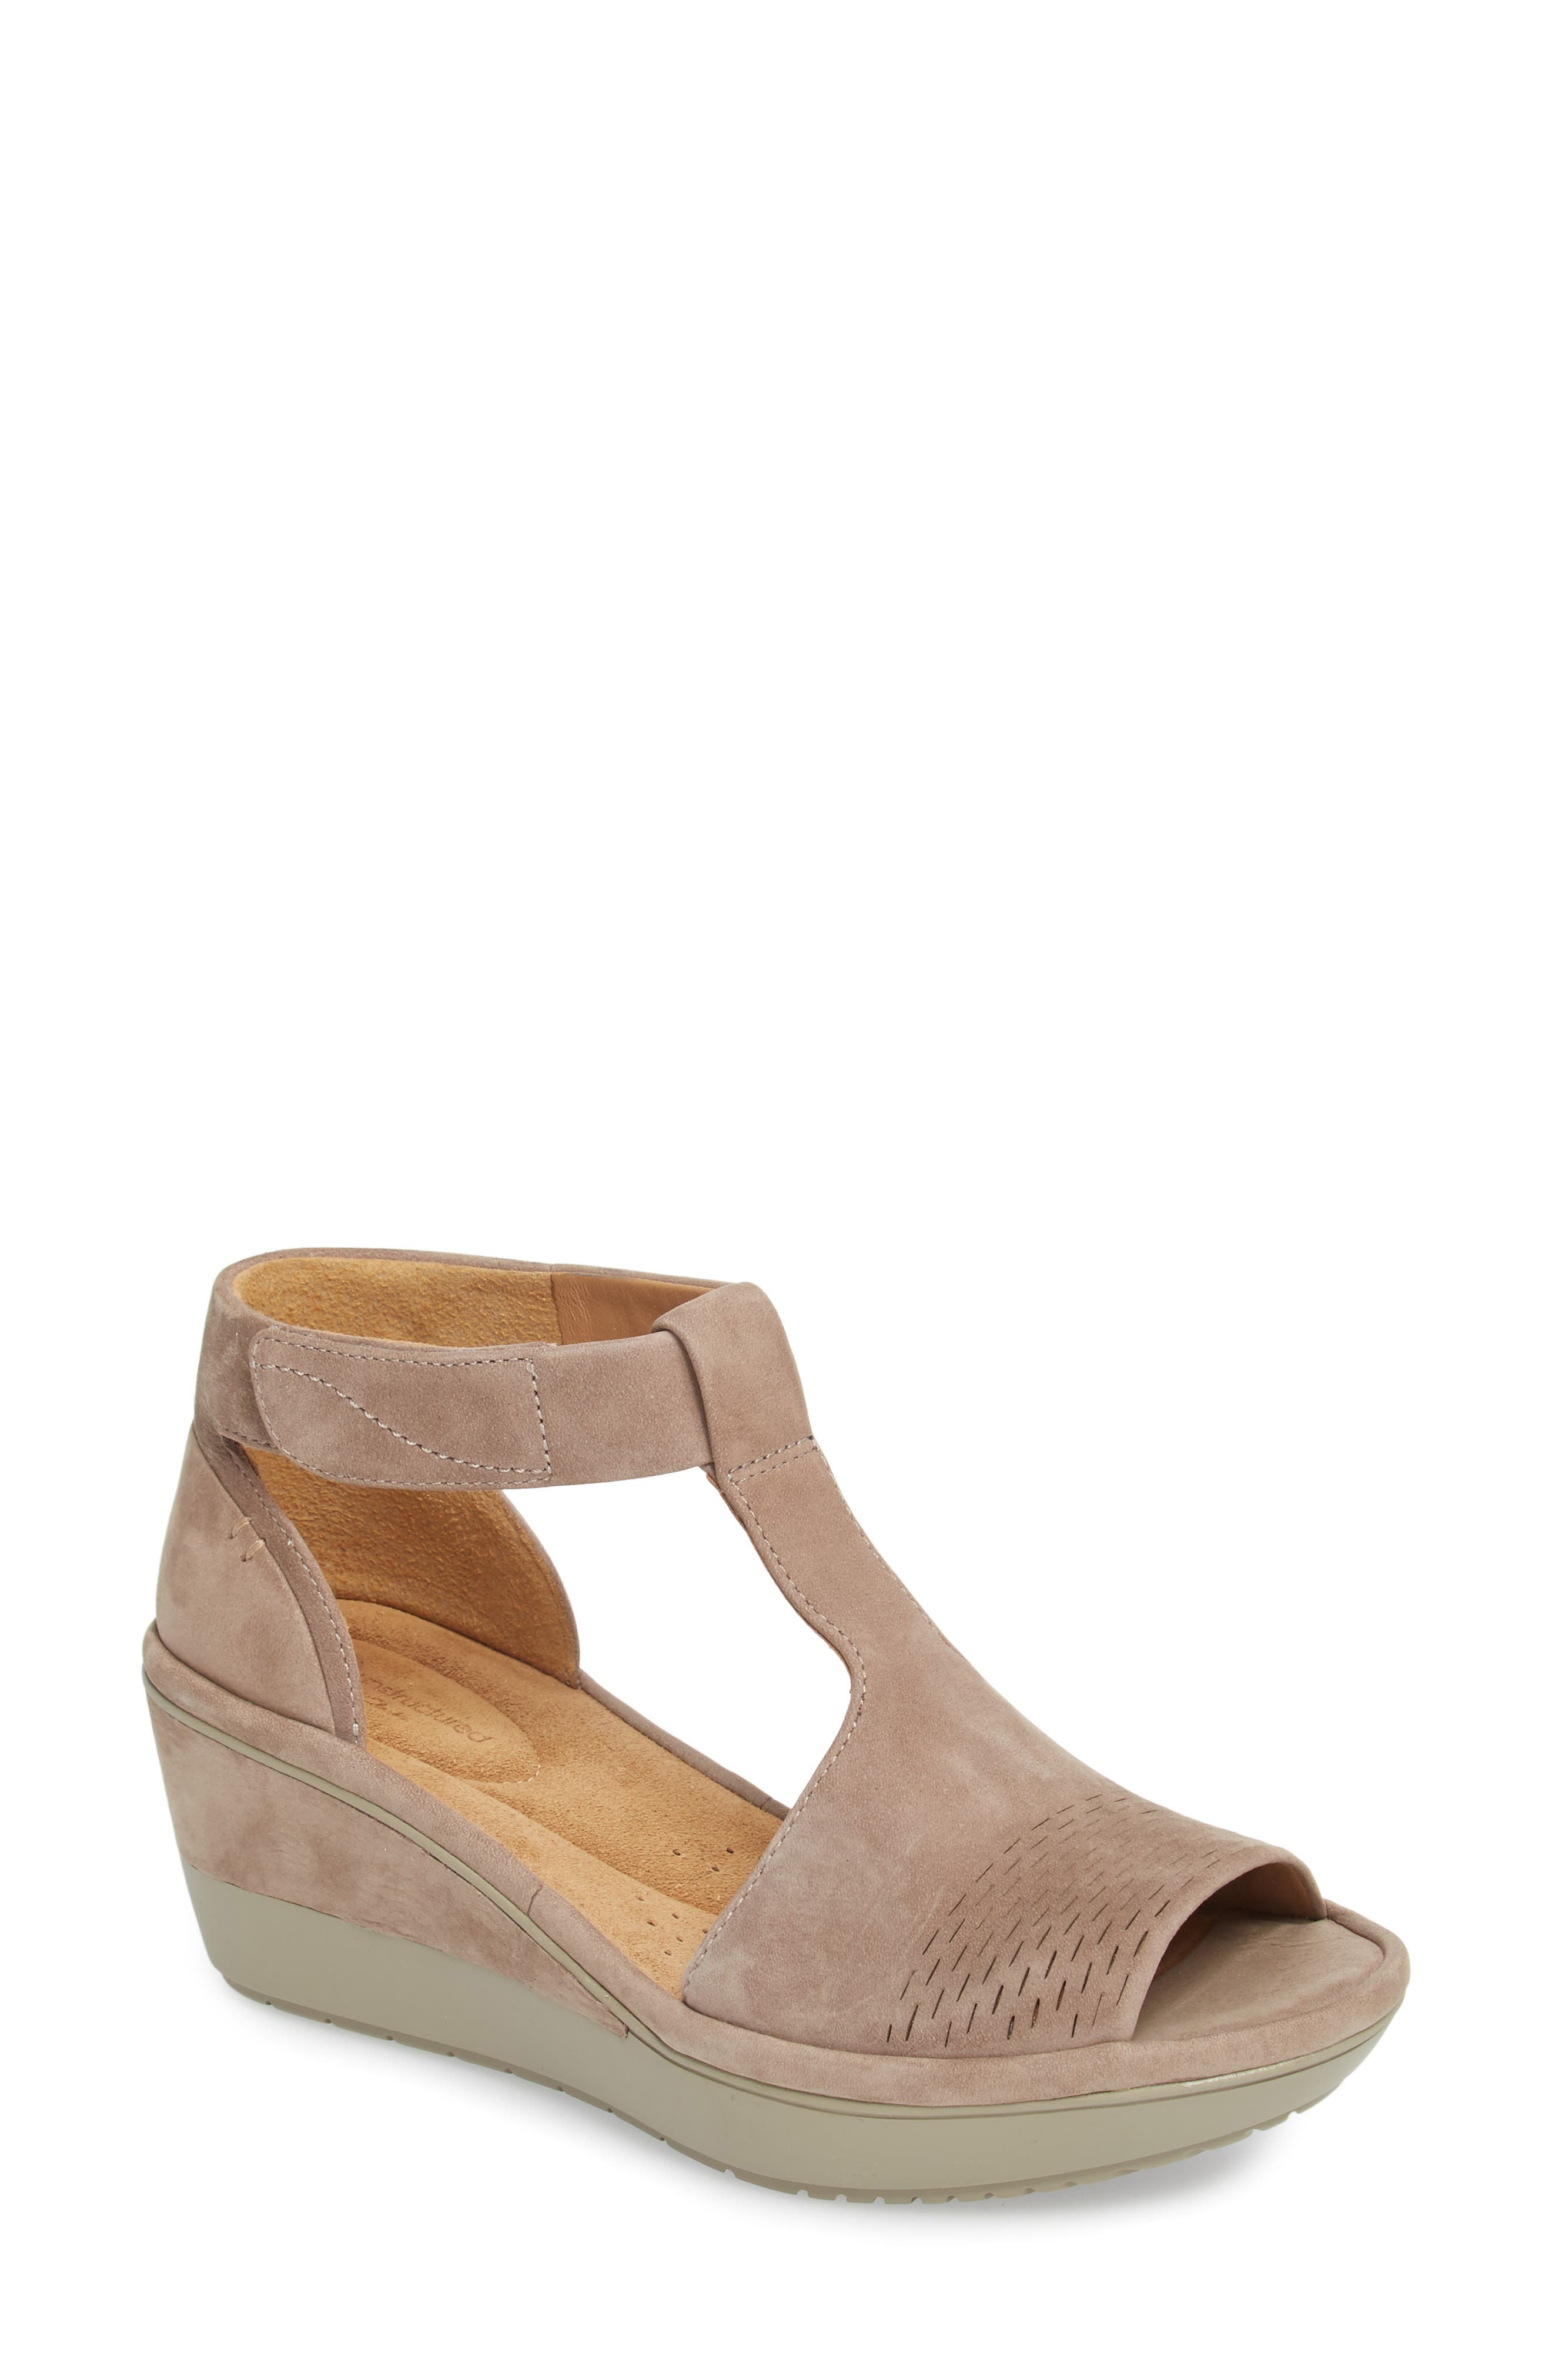 Wynnmere Avah T-Strap Wedge Sandal,                             Main thumbnail 1, color,                             Warm Grey Nubuck